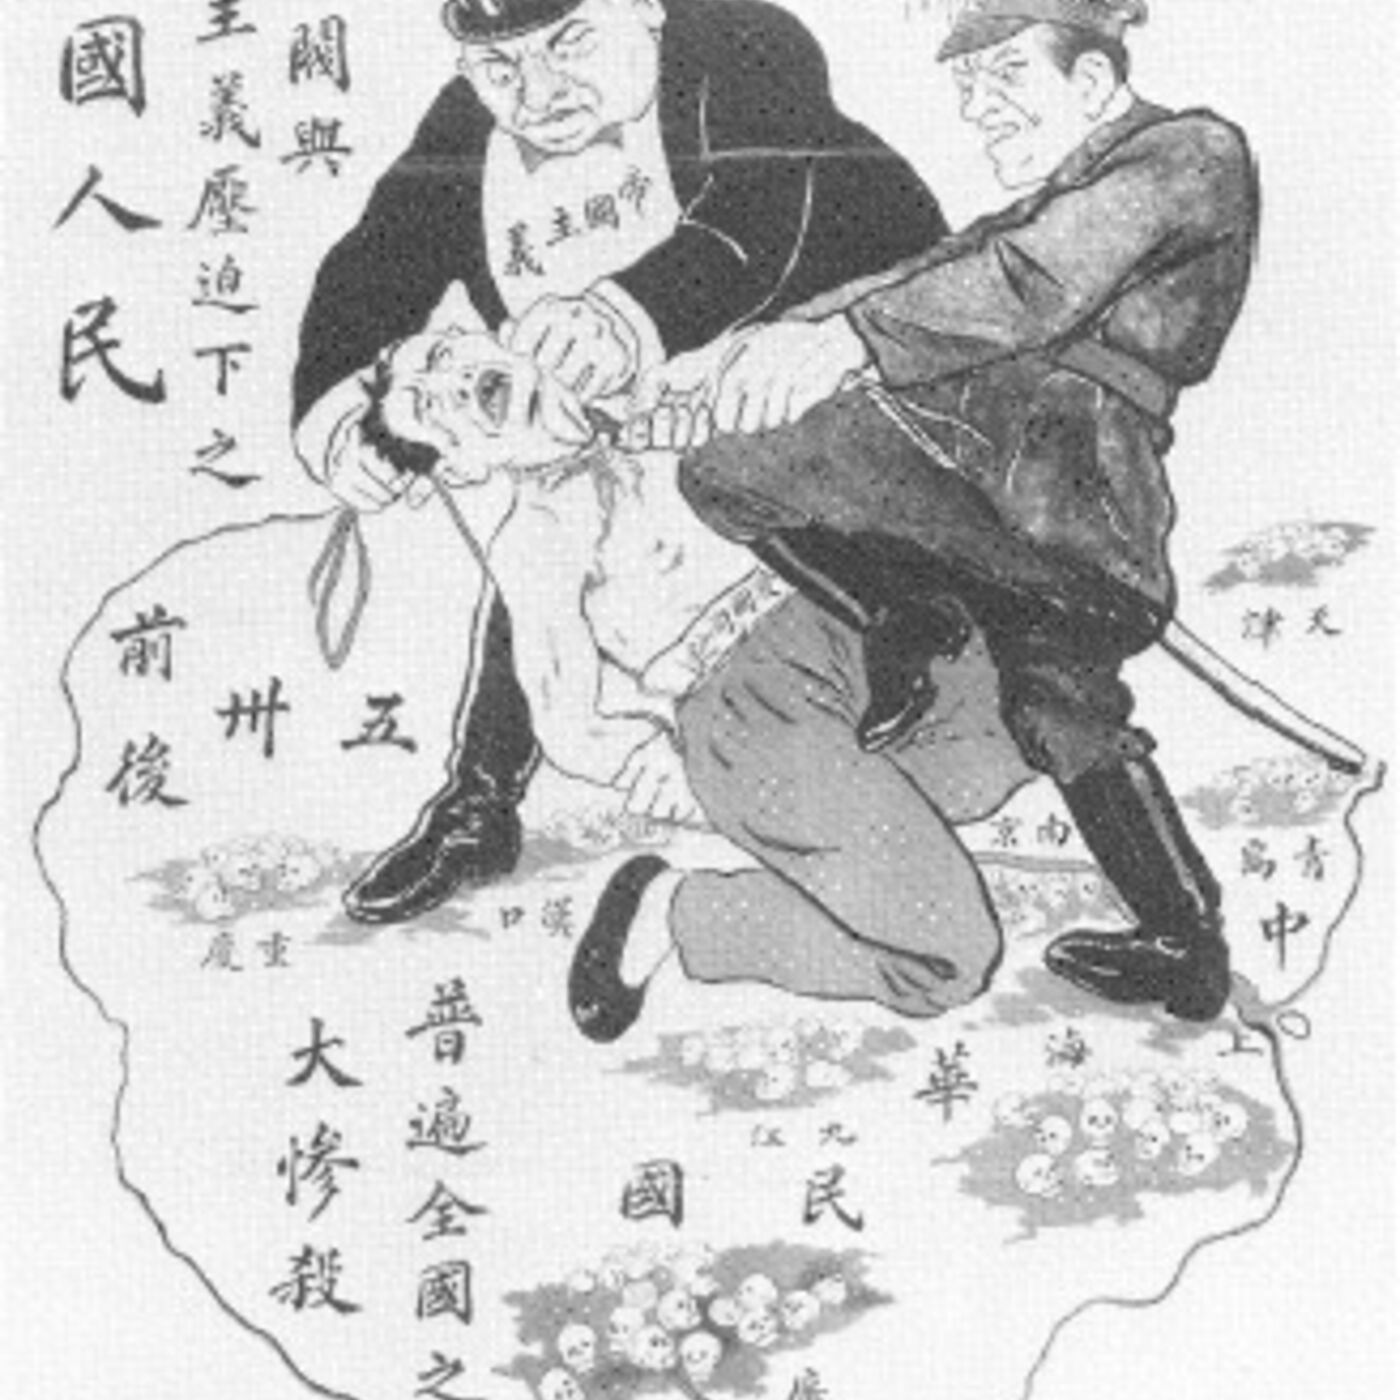 The May 30 Movement: The Chinese People's Uprising Against the British and Japanese in 1925